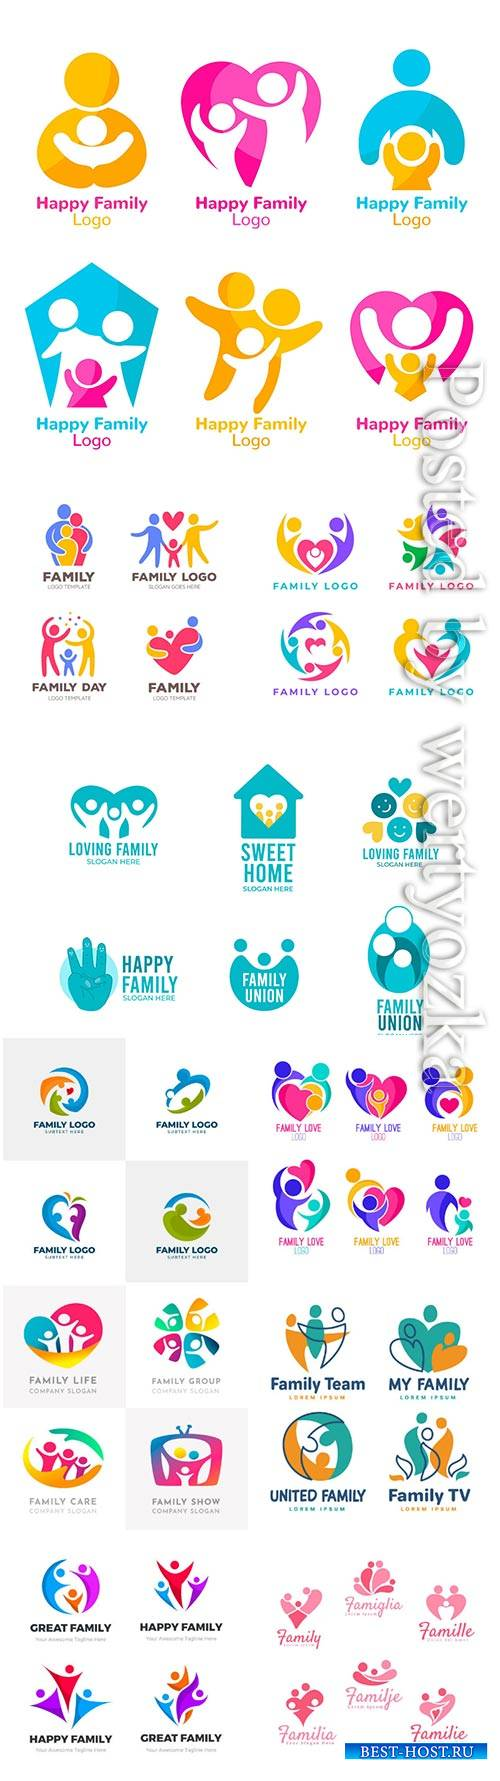 Family logo vector collection